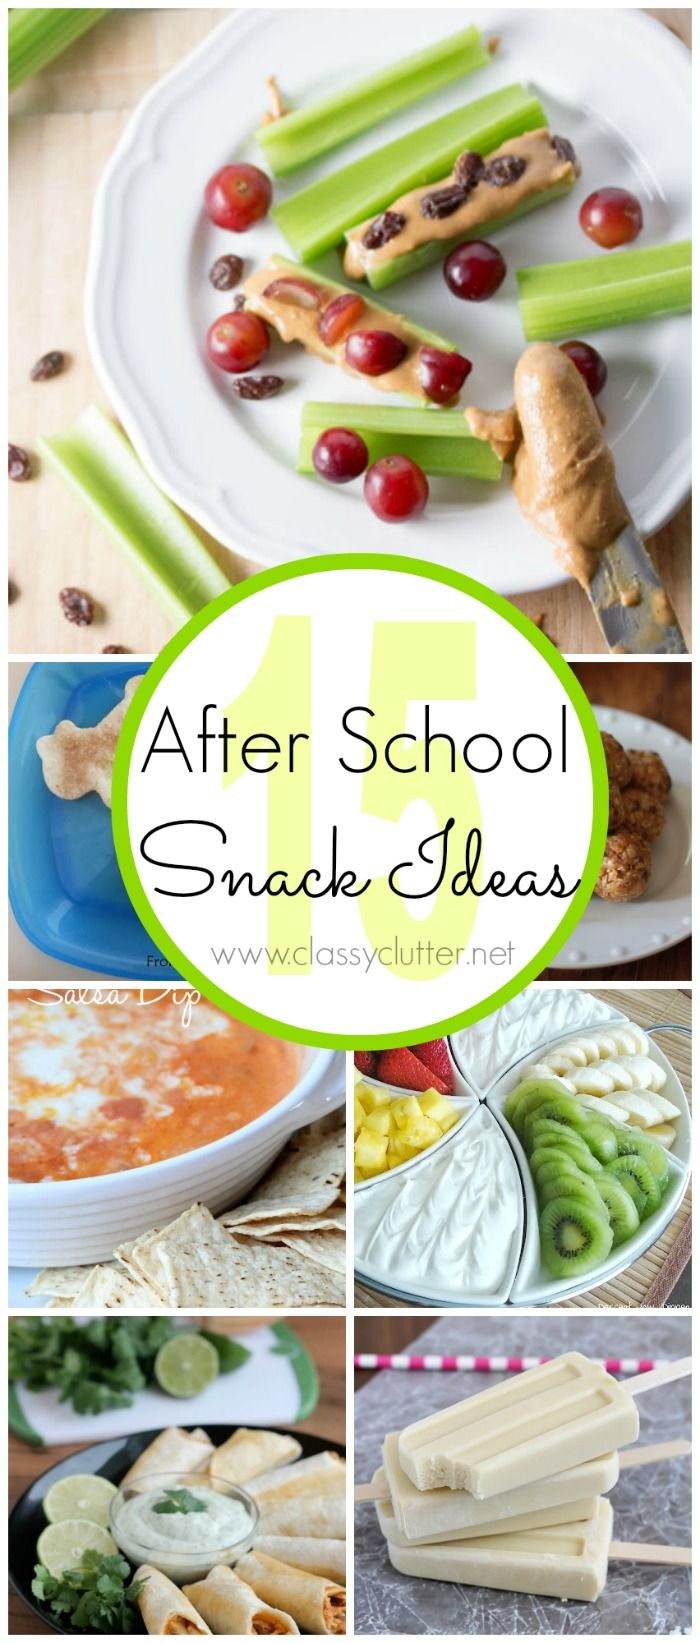 15 After School Snack Ideas - www.classyclutter.net